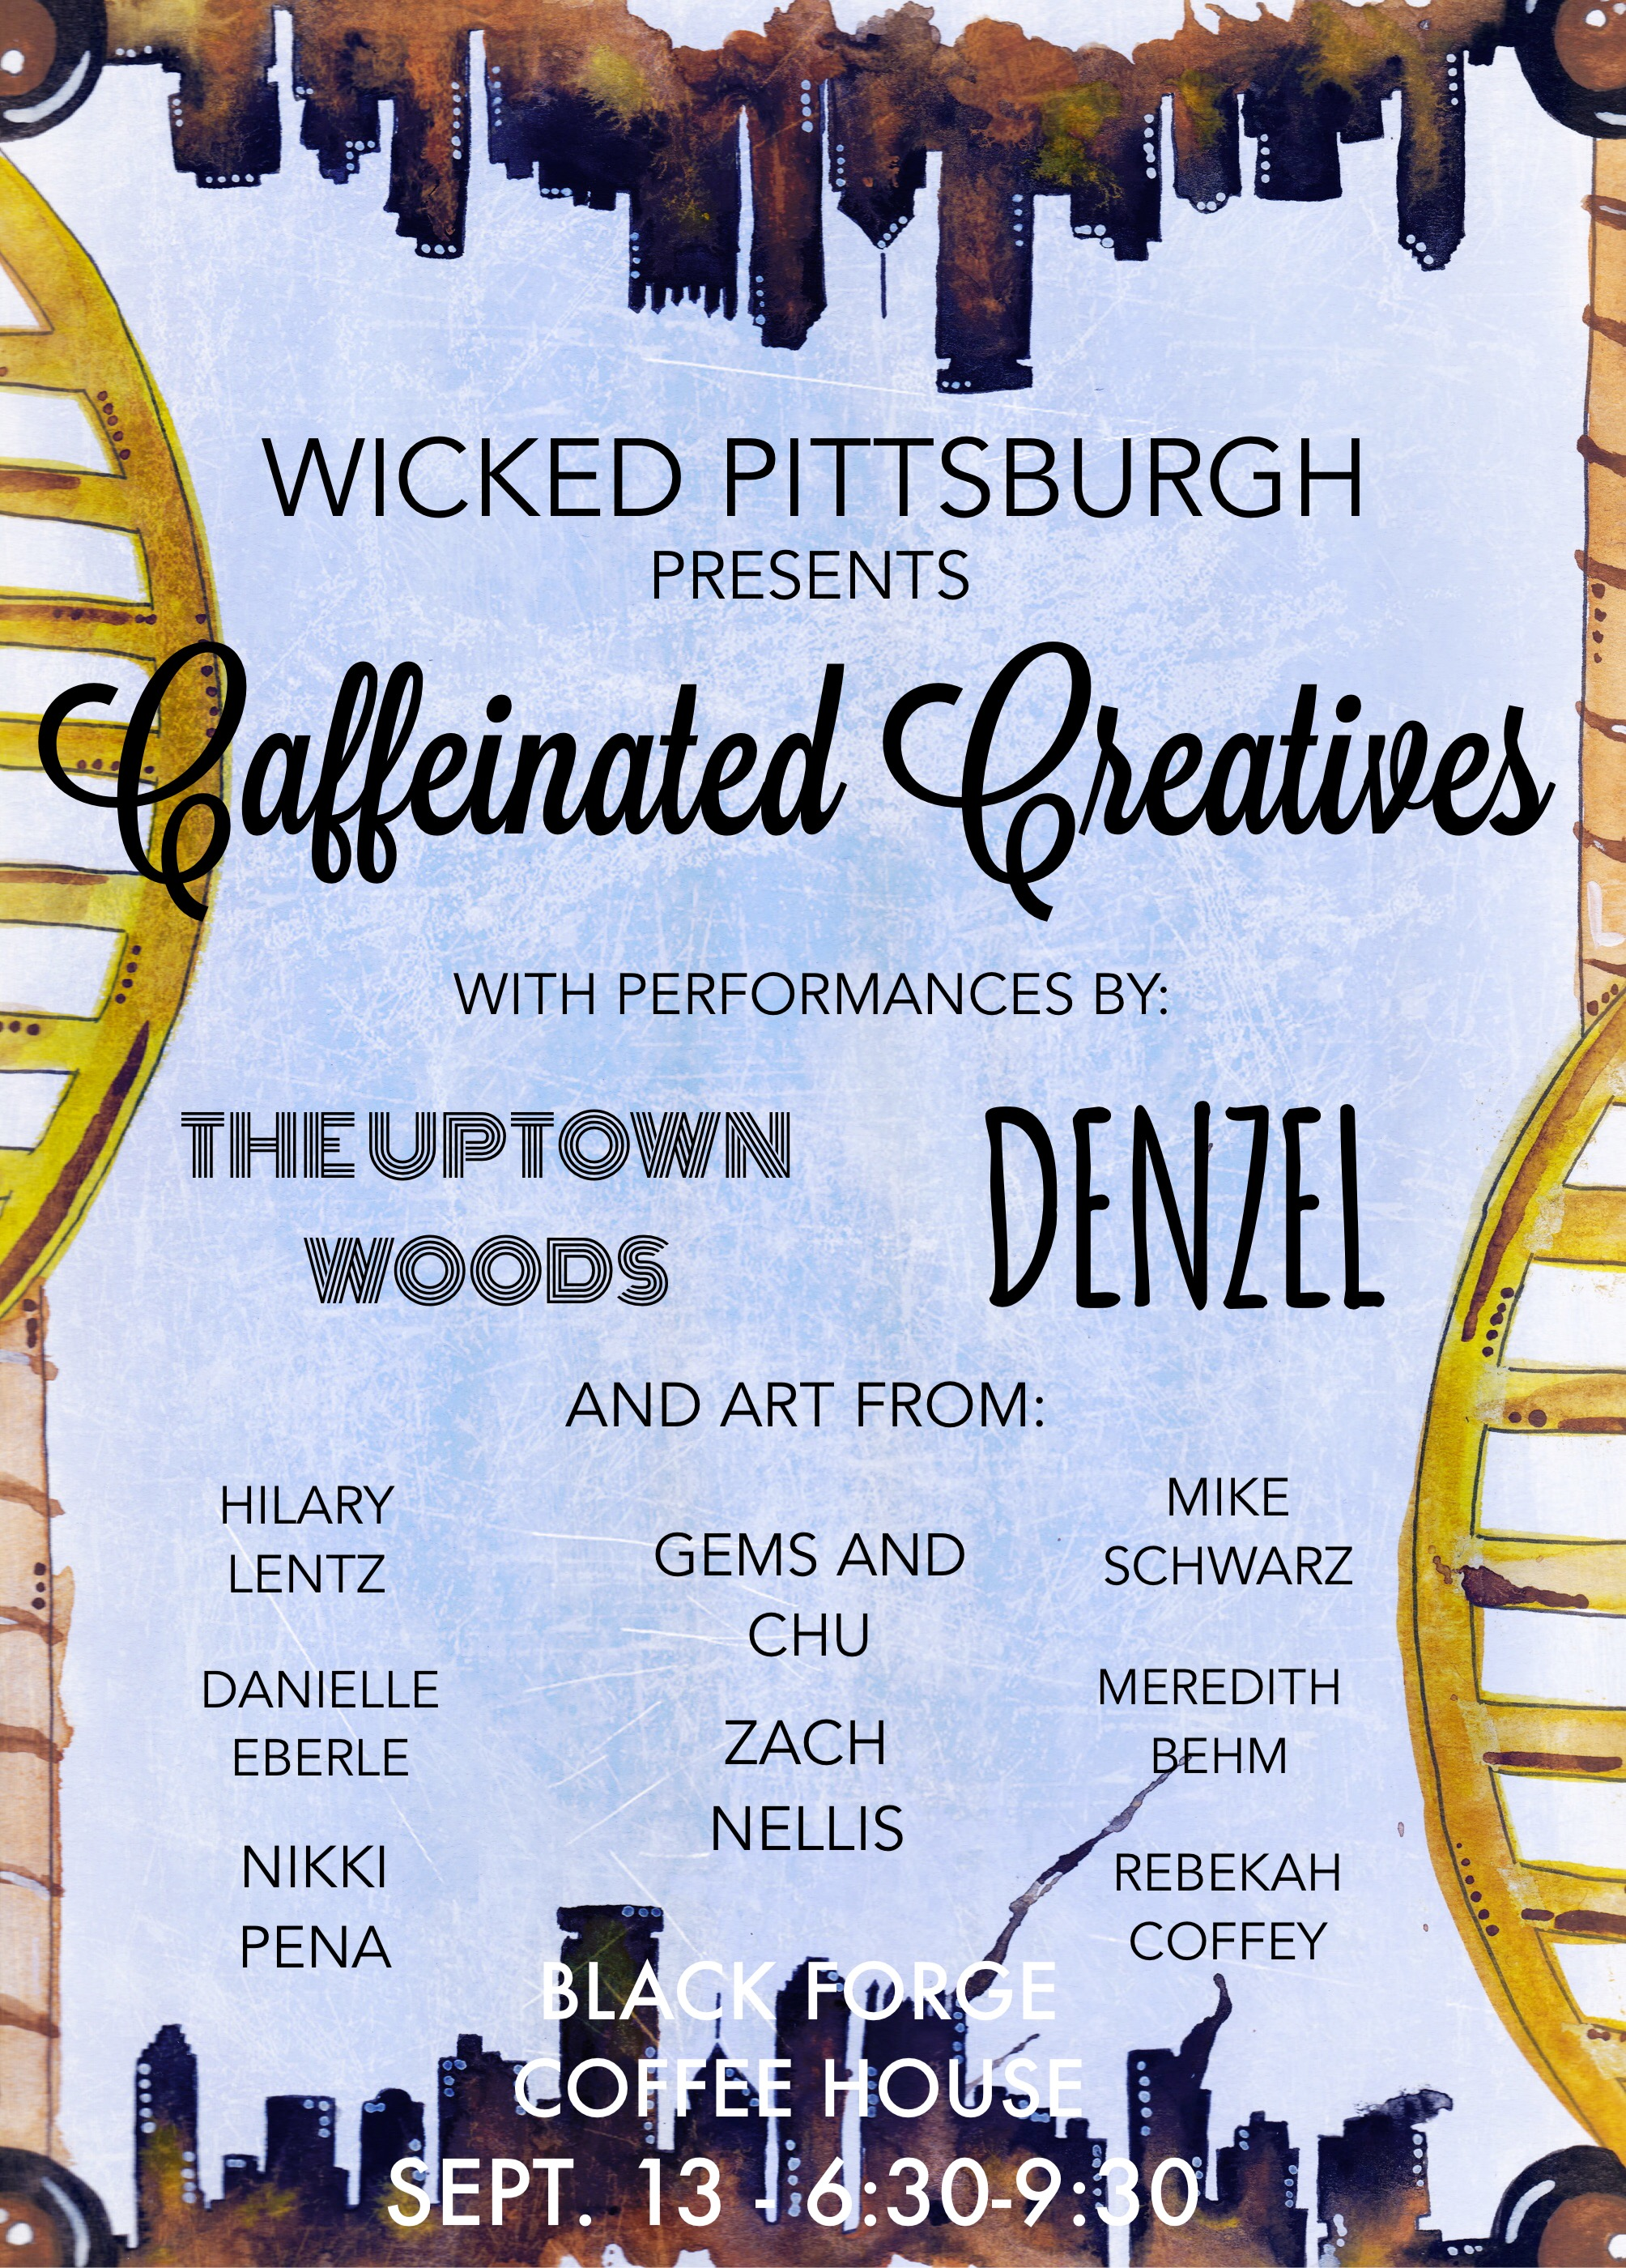 Caffeinated Creatives Flyer - Wicked Pittsburgh Art Collective - Art by: Danielle Eberle - Text/Design by: Mike Schwarz